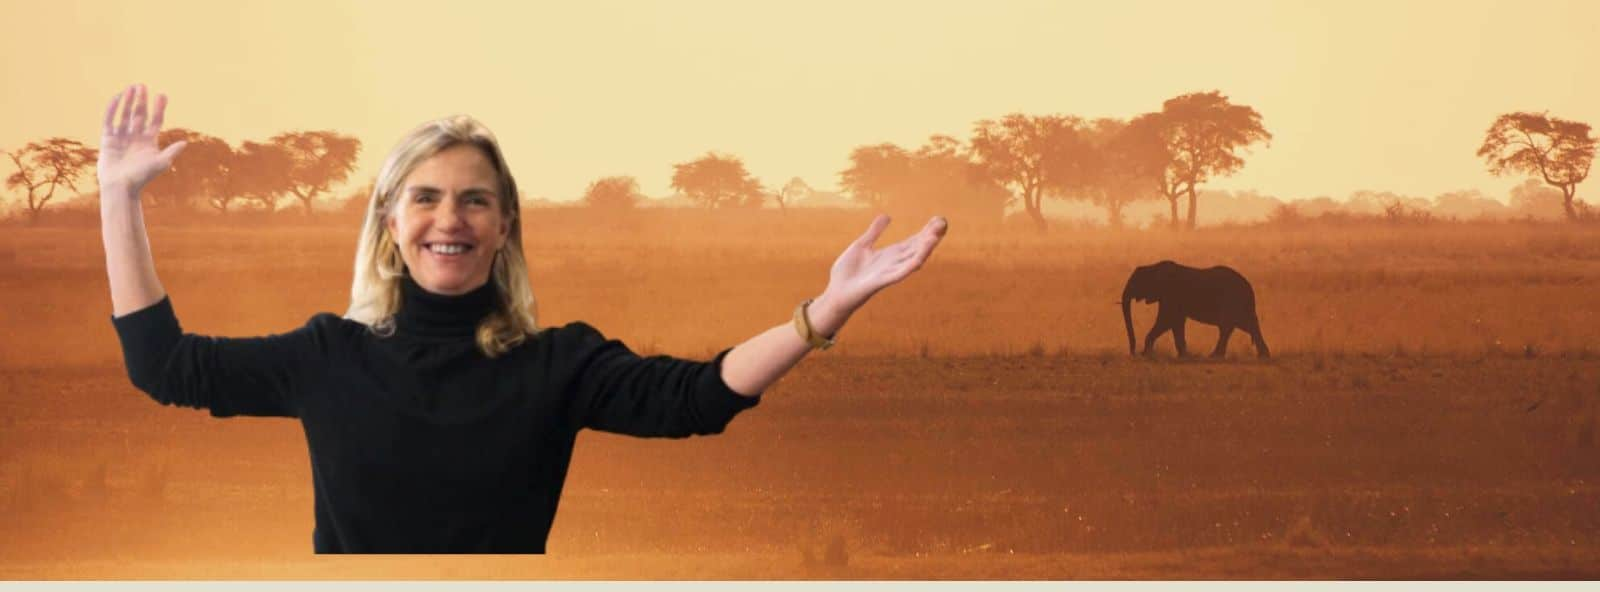 Picture of Alexandra with Arms open towards sky - with vast open savannah plain with elephant in background